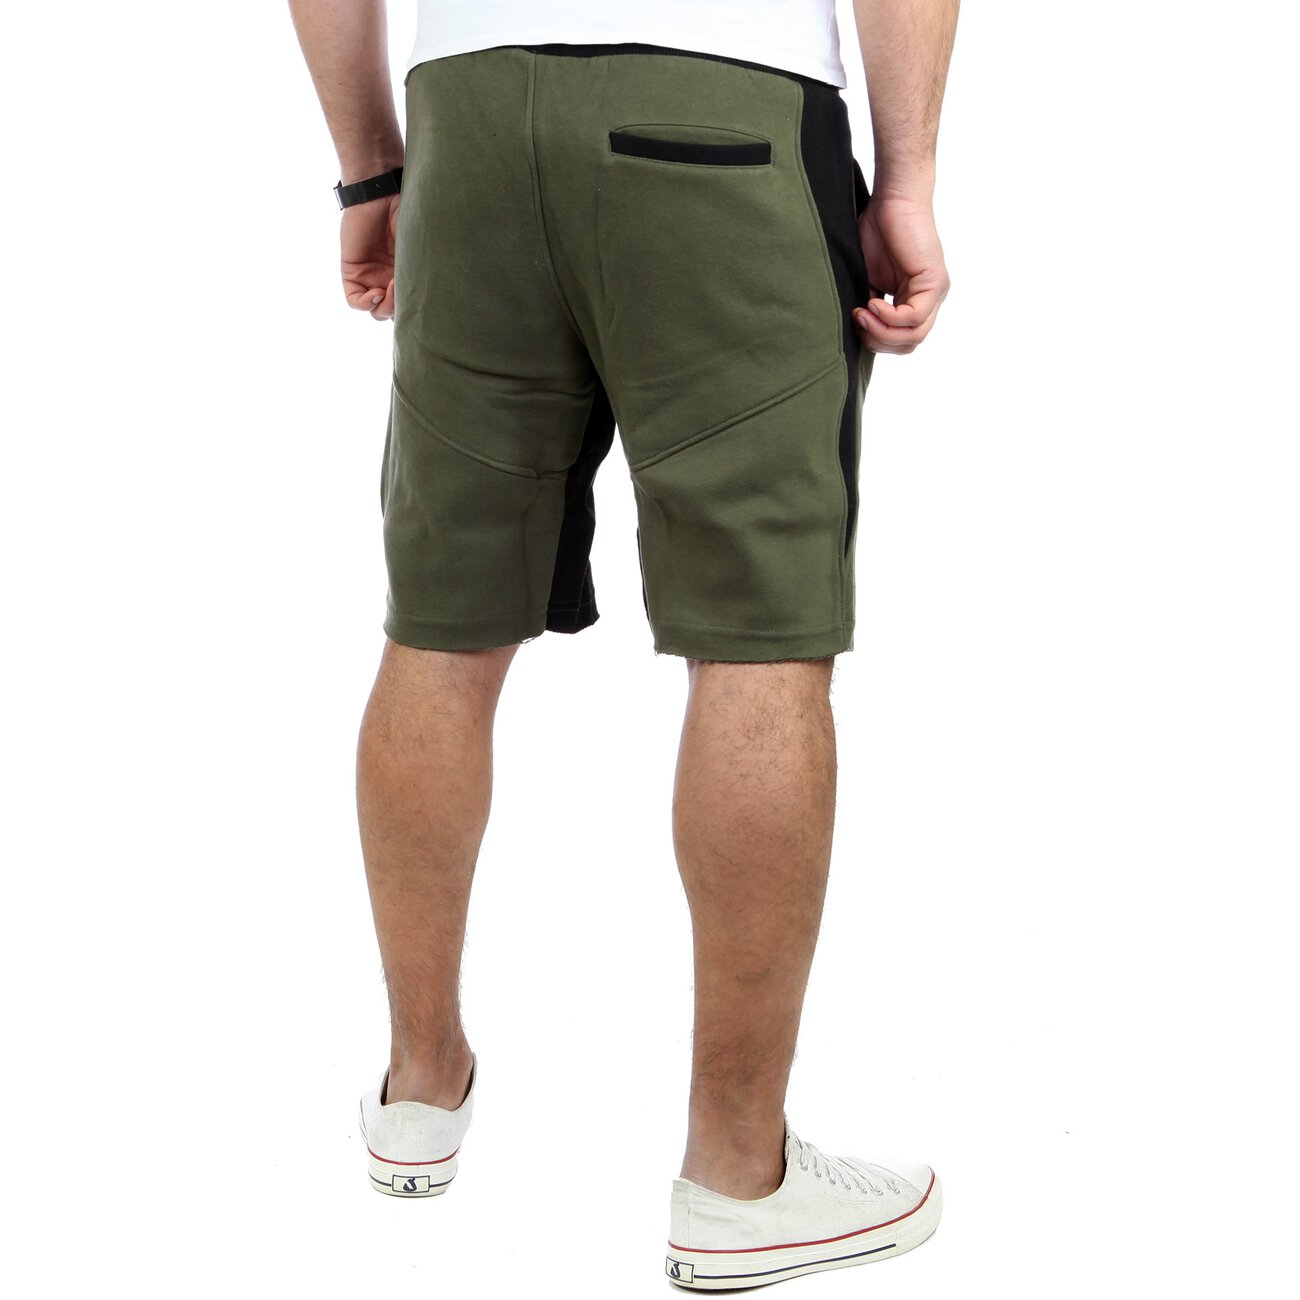 reslad kurze hose herren fitness jogginghose kurz shorts sport hose r. Black Bedroom Furniture Sets. Home Design Ideas